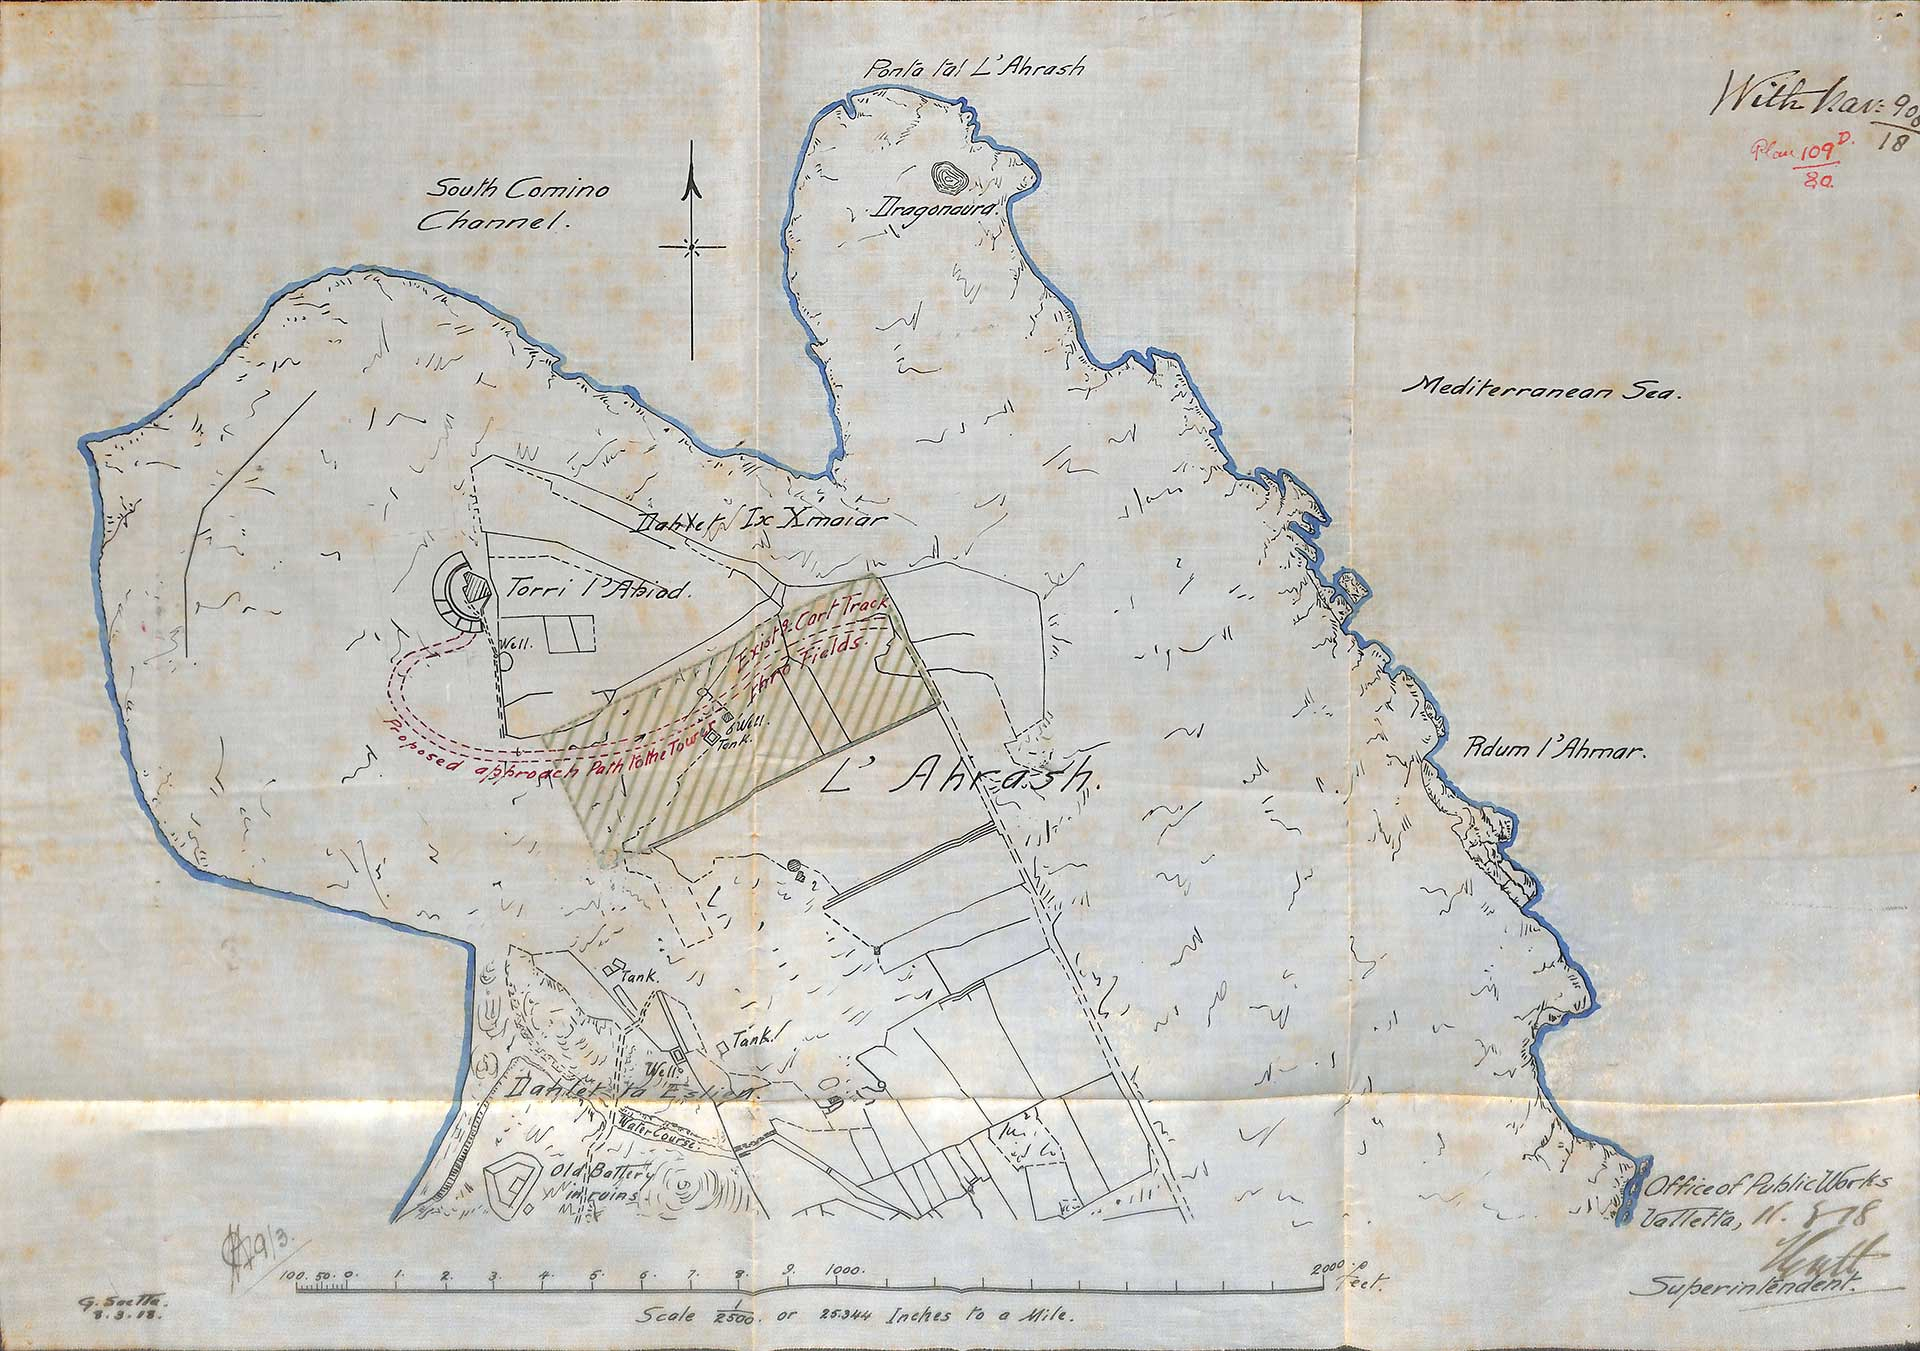 1918 plan for Naval Authority (National Archives Rabat)